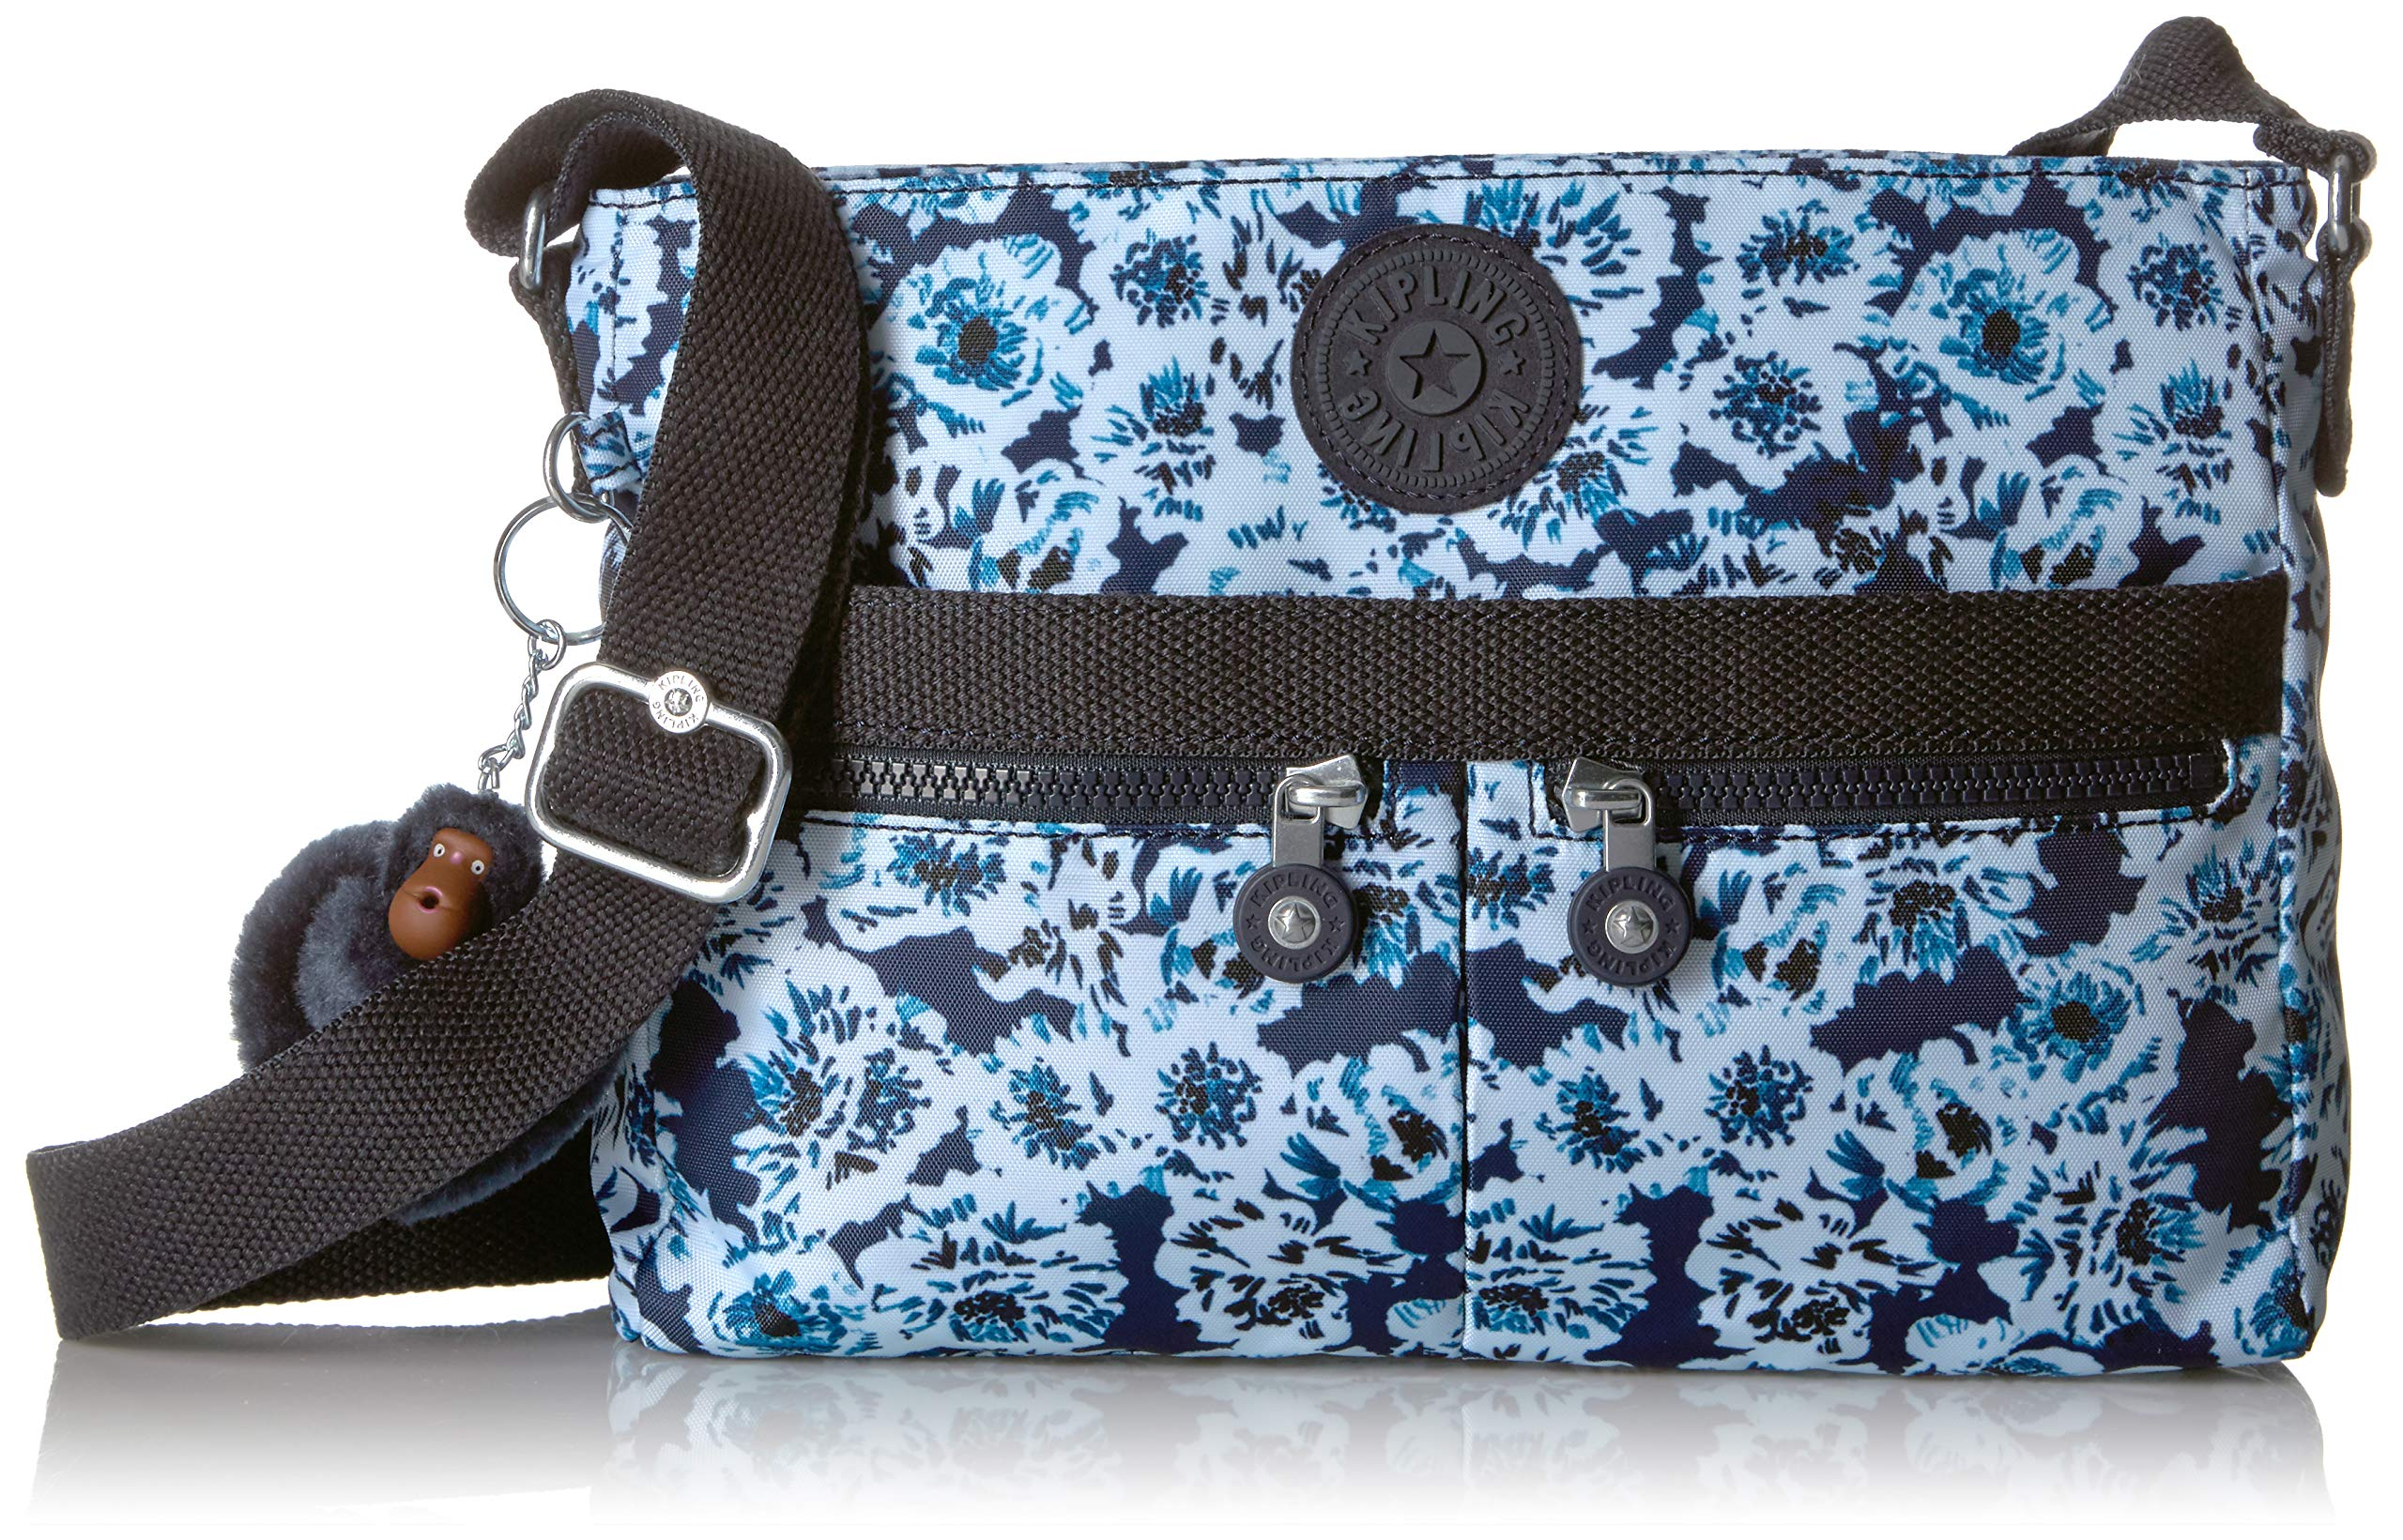 Kipling Women's Angie Crossbody Bag, Adjustable Shoulder Strap, Zip Closure, roaming roses